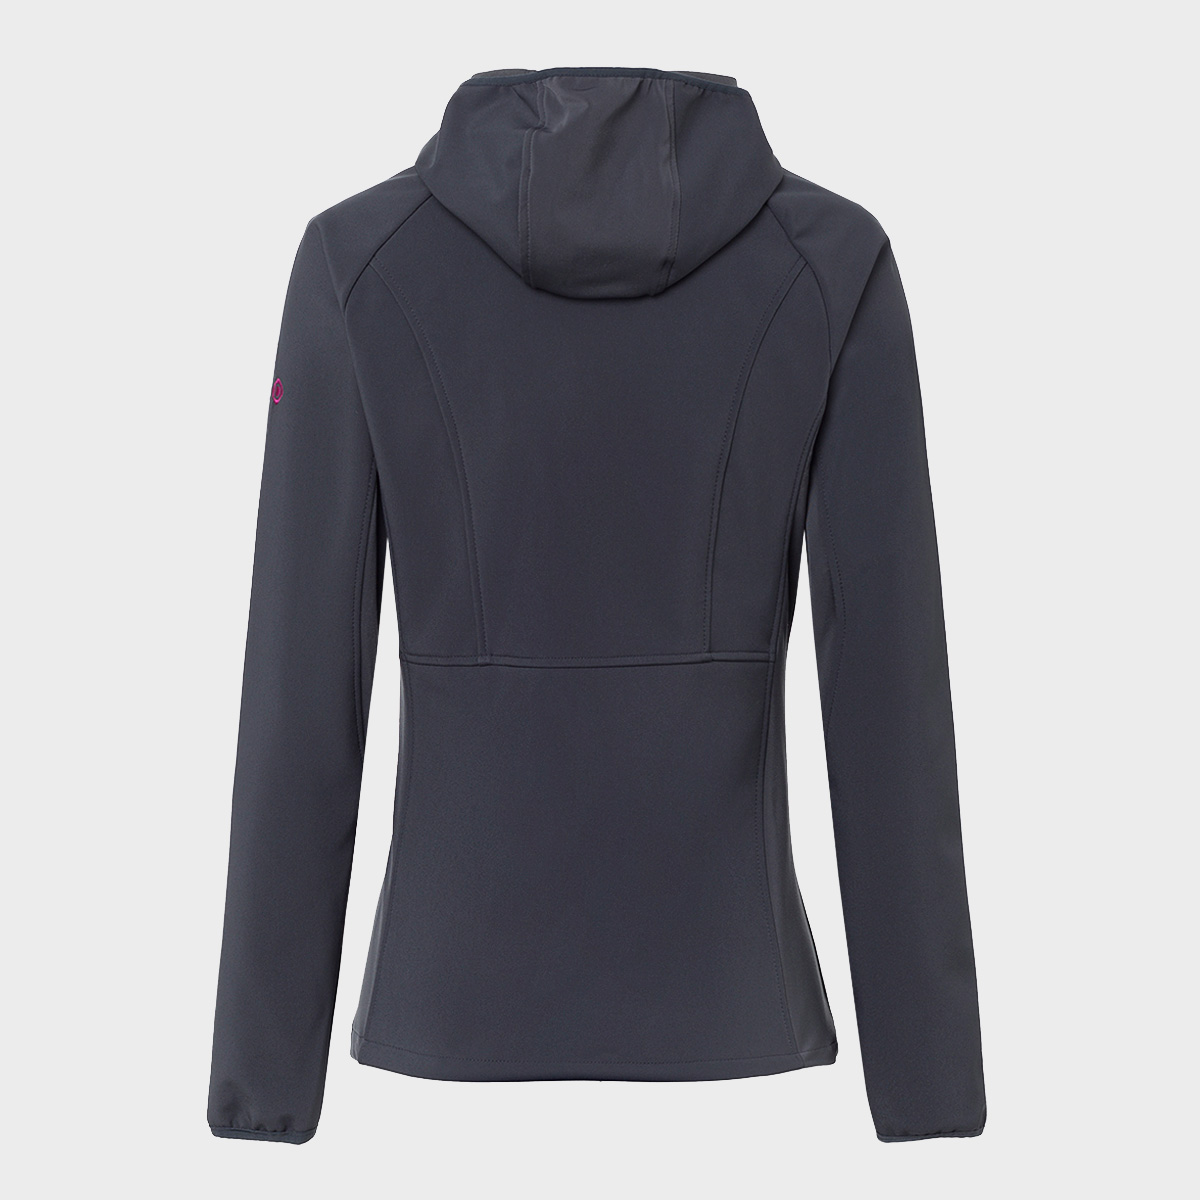 WOMAN'S ABIERI SOFT SHELL+PADDED GREY